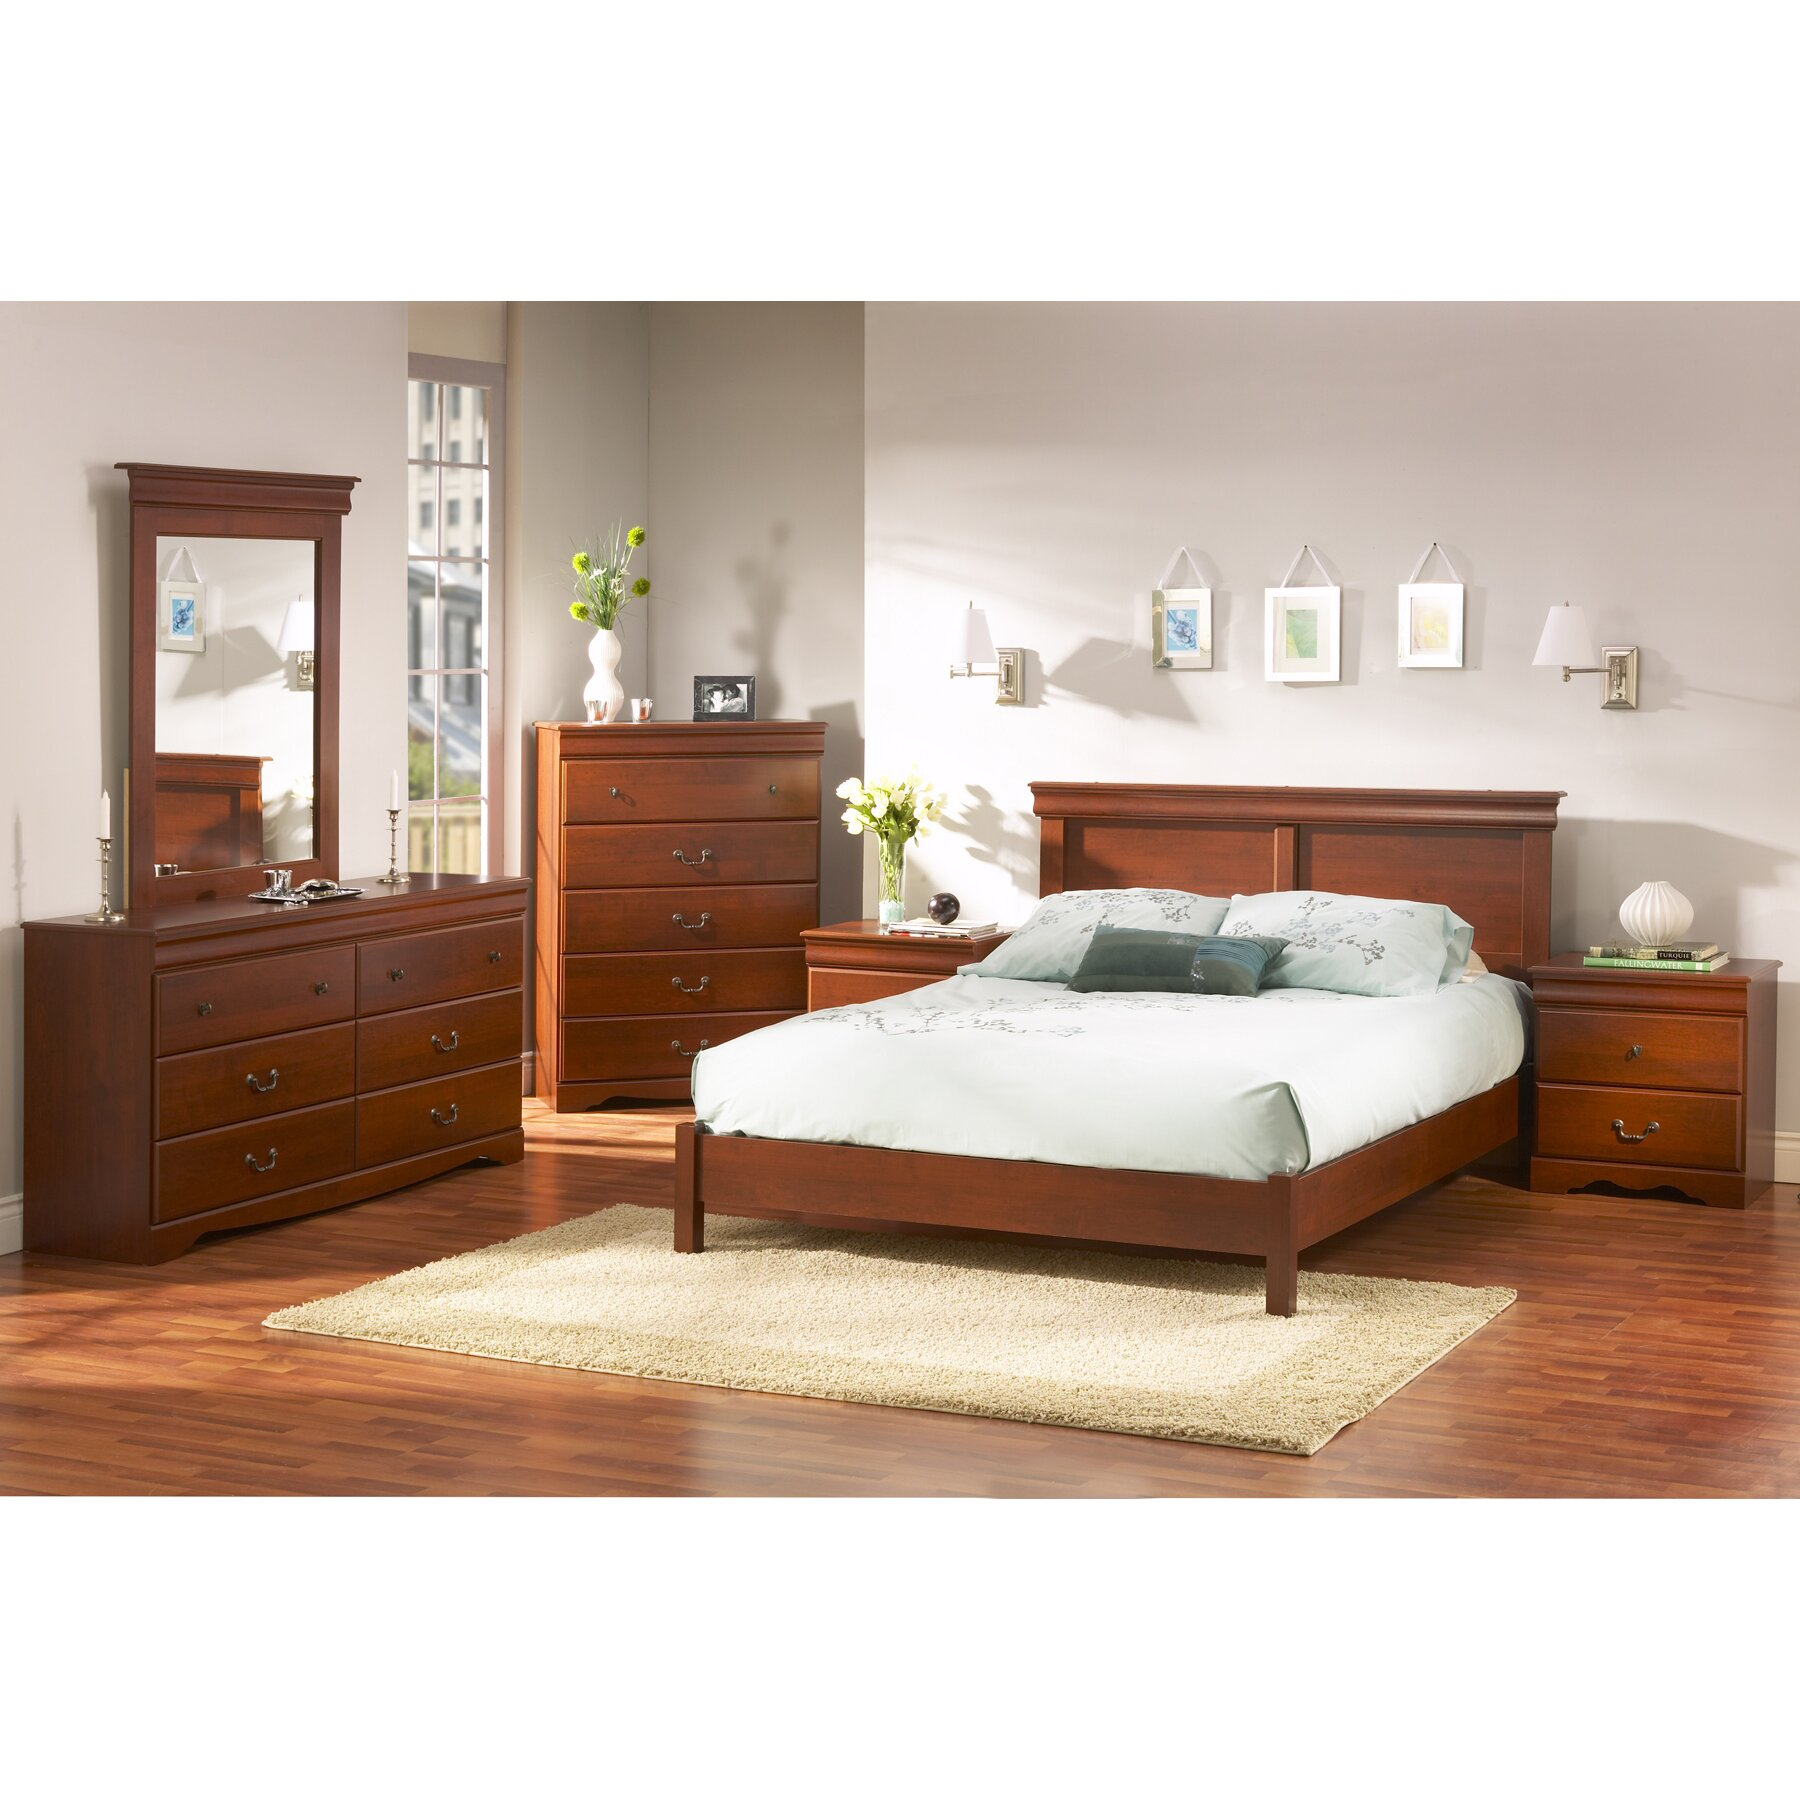 South Shore Vintage Queen Platform Customizable Bedroom